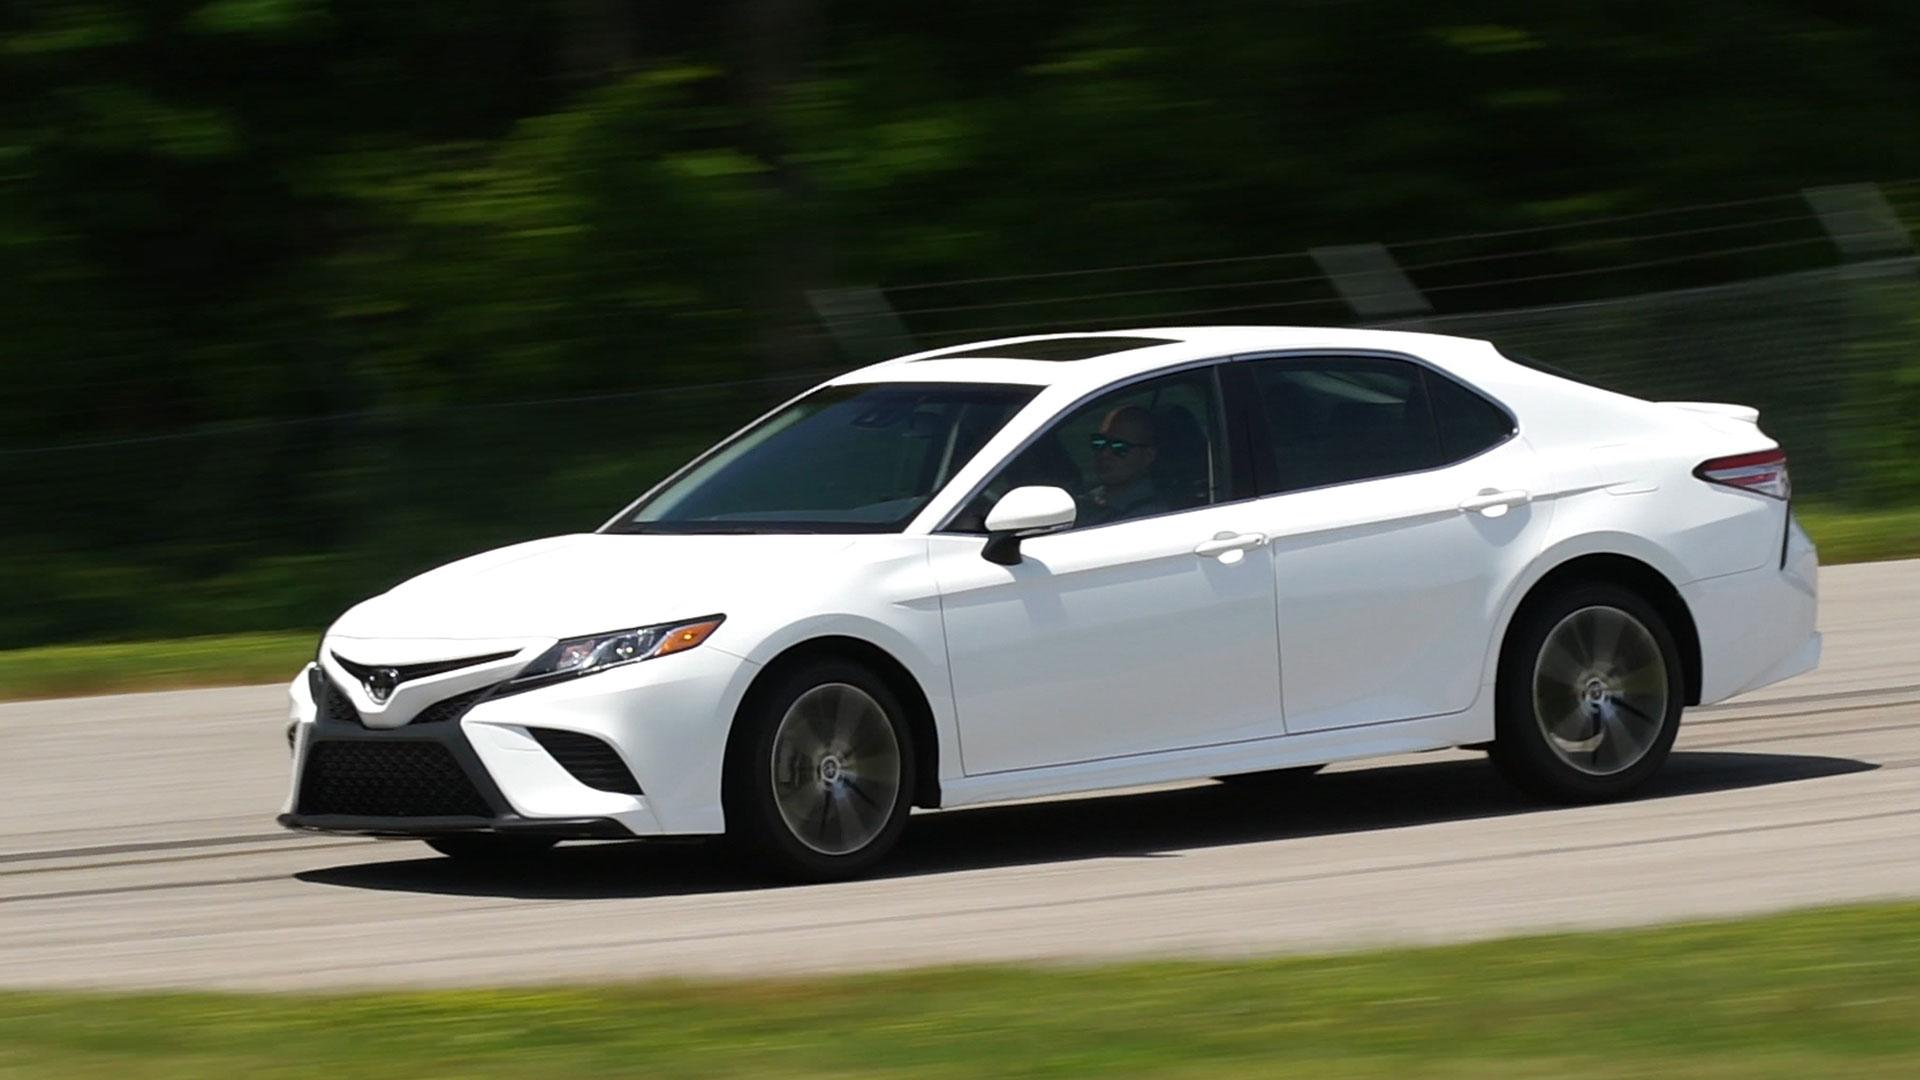 Toyota Camry: Winter driving tips